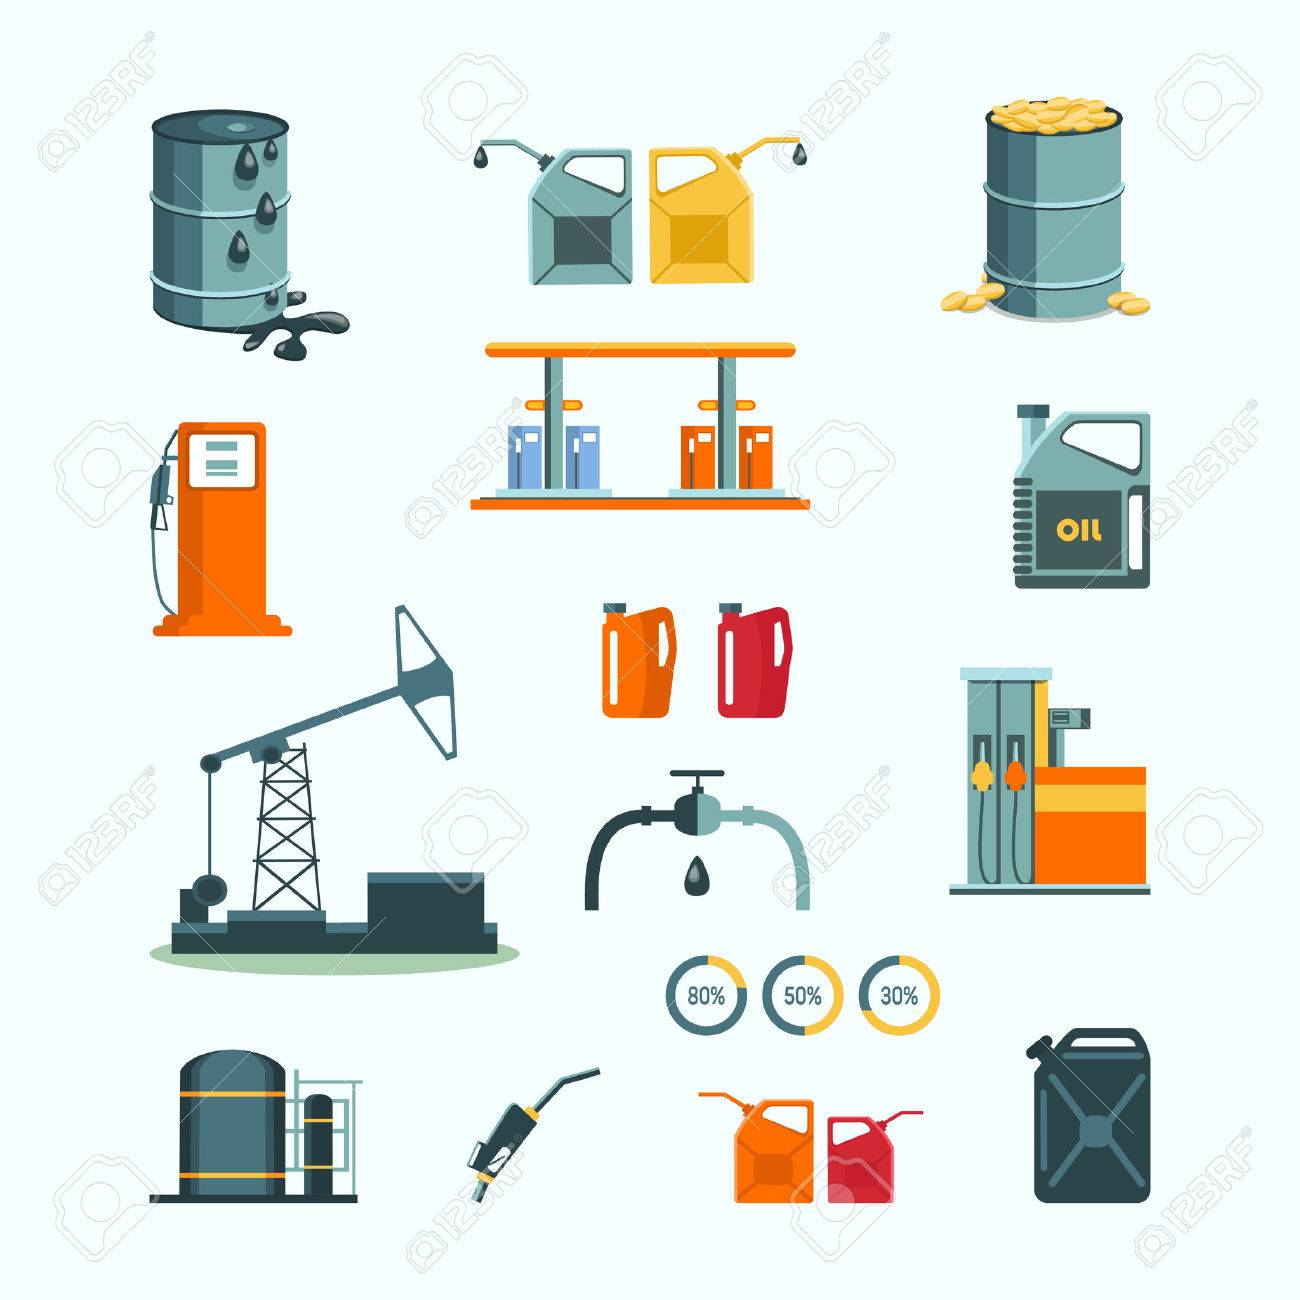 Oil and petrol industry vector objects - 42150965